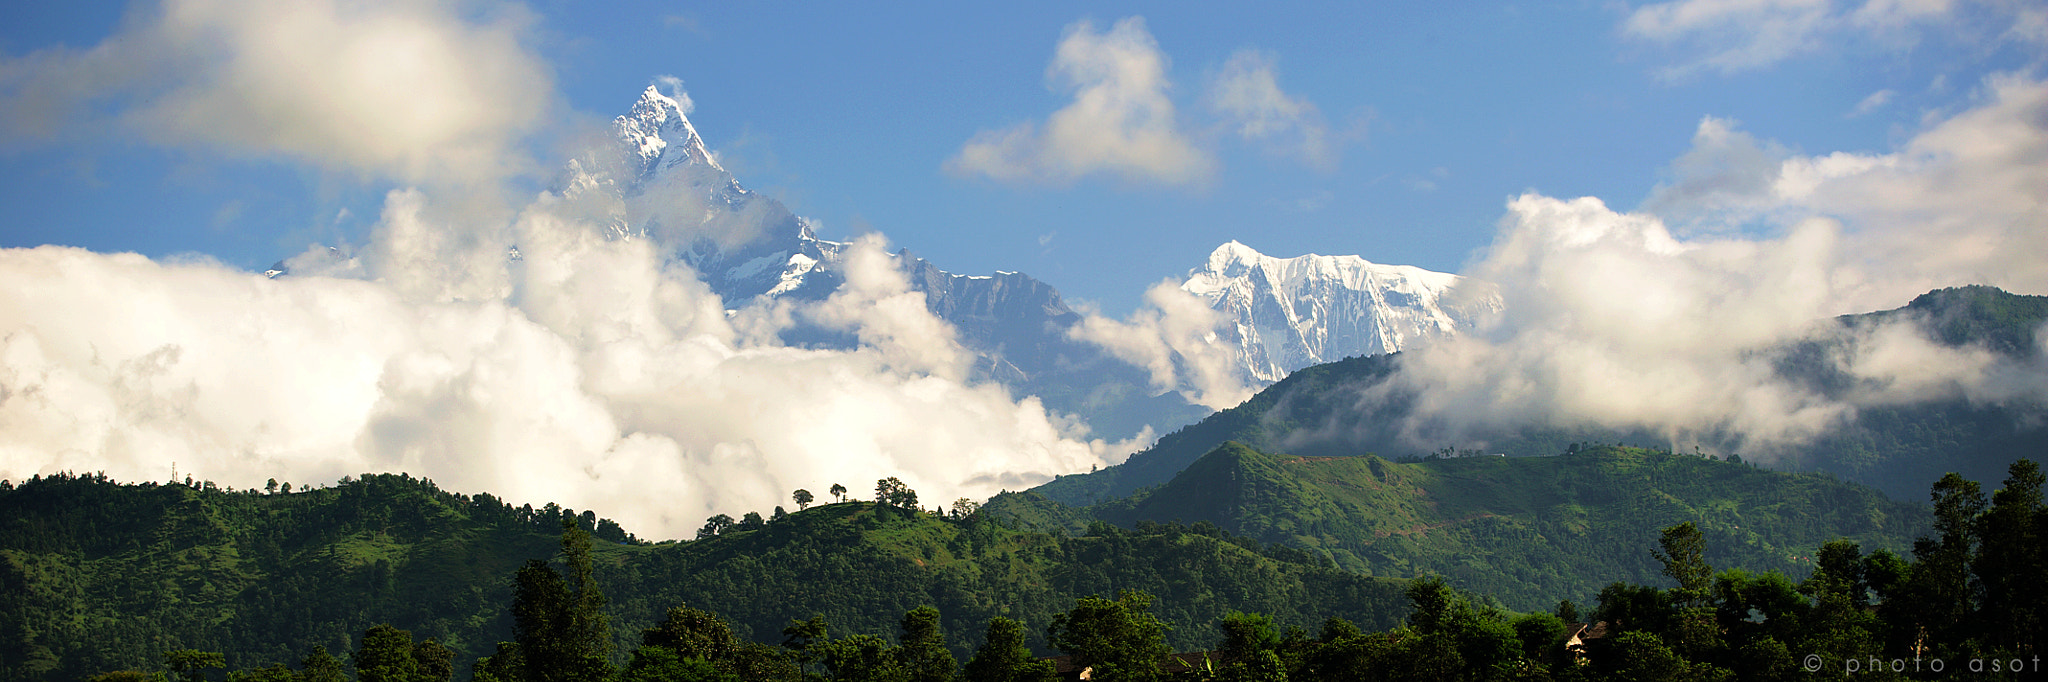 Photograph Machapuchare, Nepal by A Sot on 500px